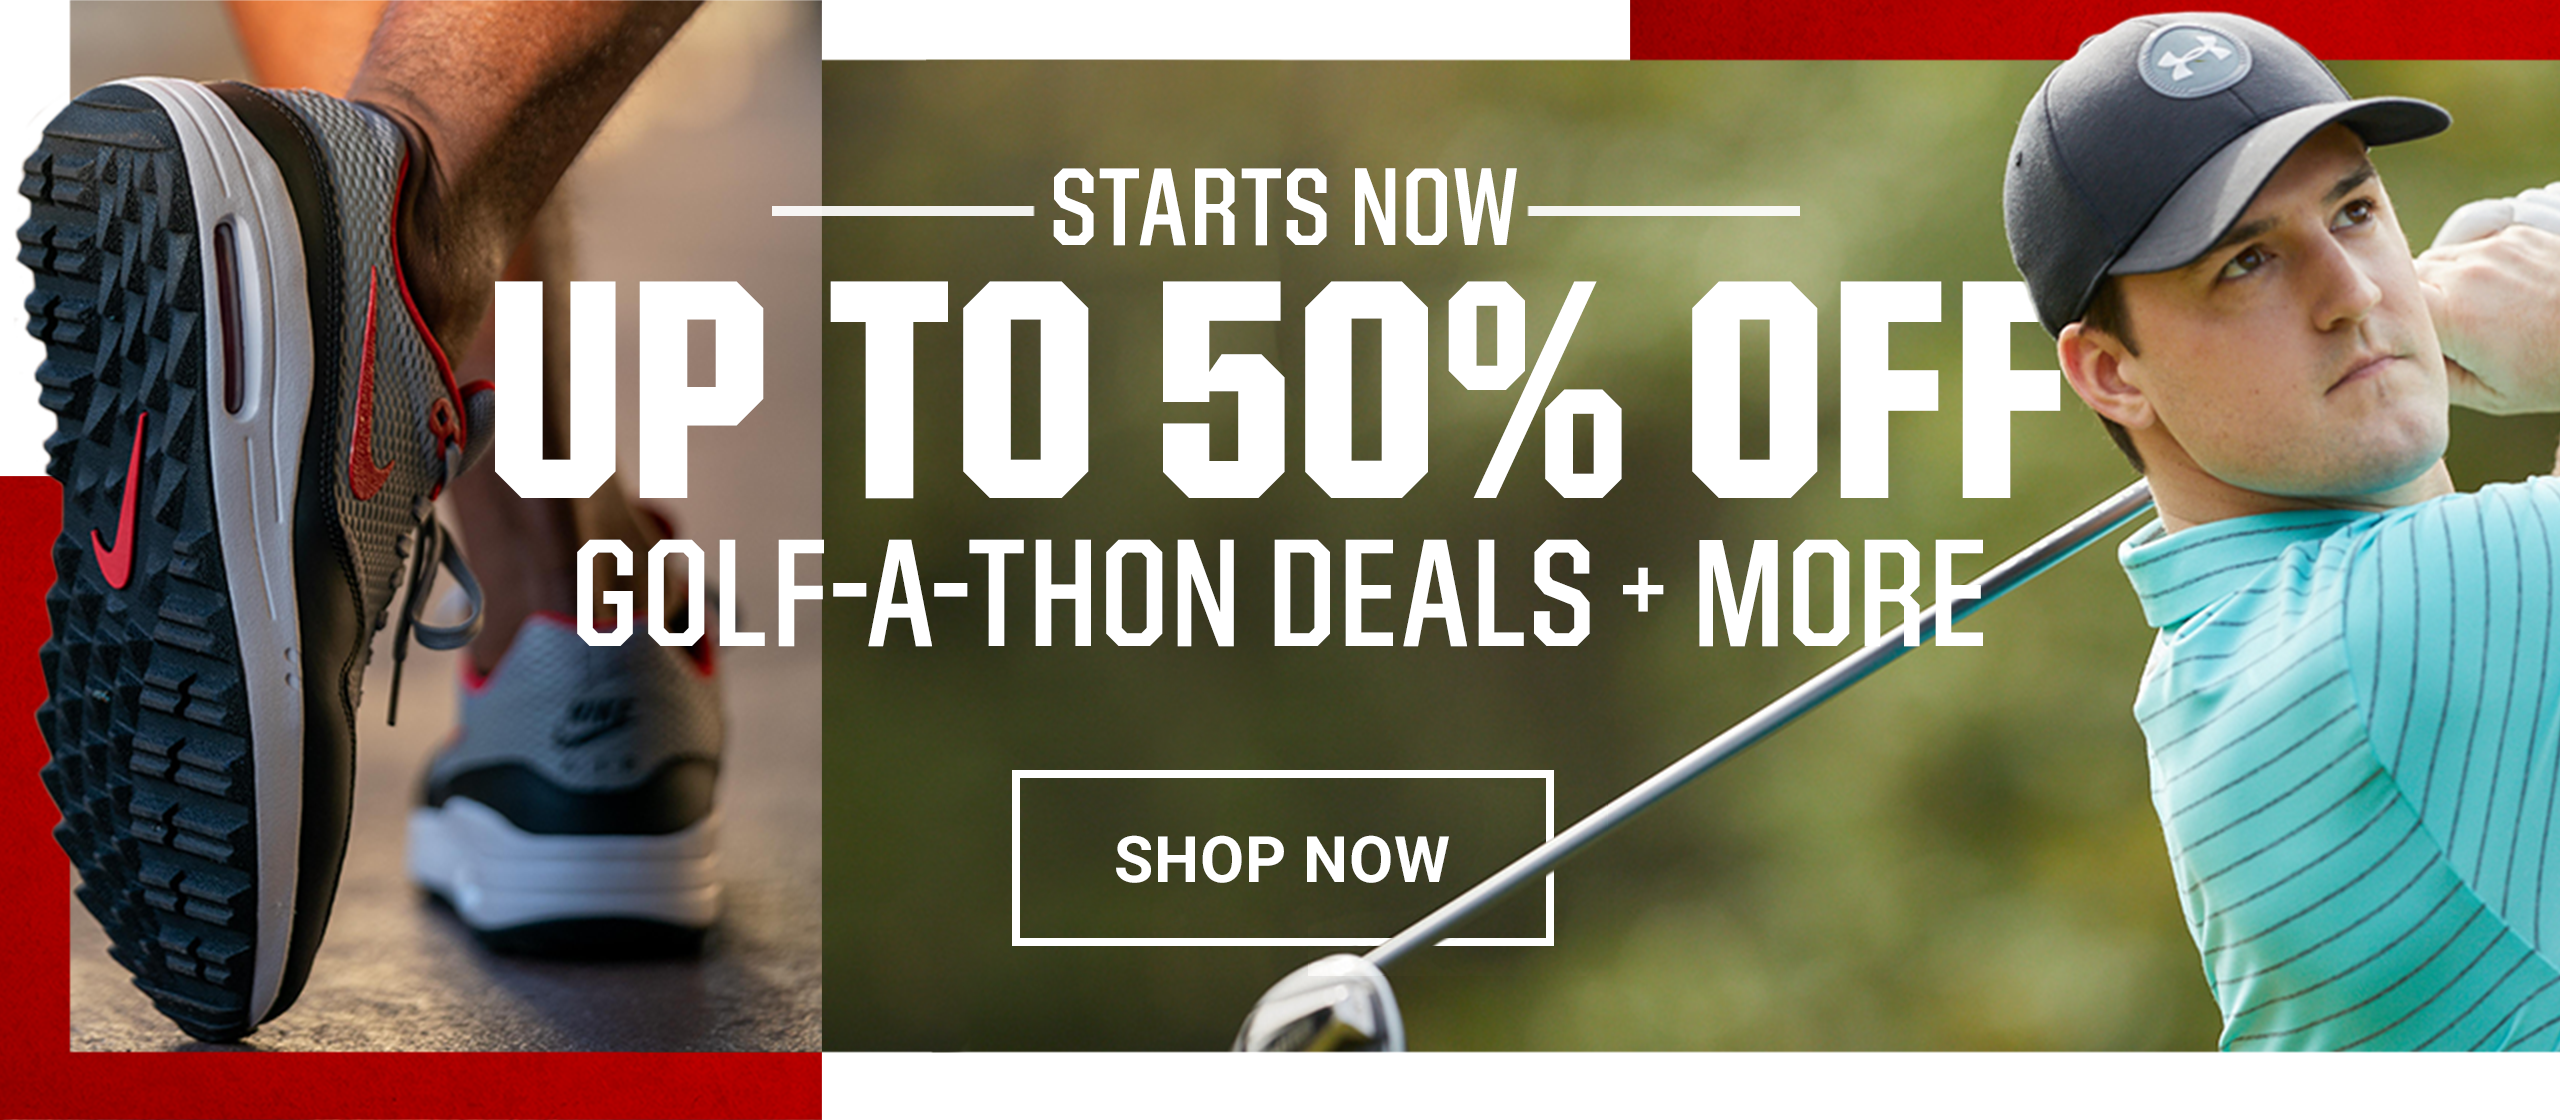 Starts Now, Up to 50% Off Golf-A-Thon Deals + More, Shop Now.